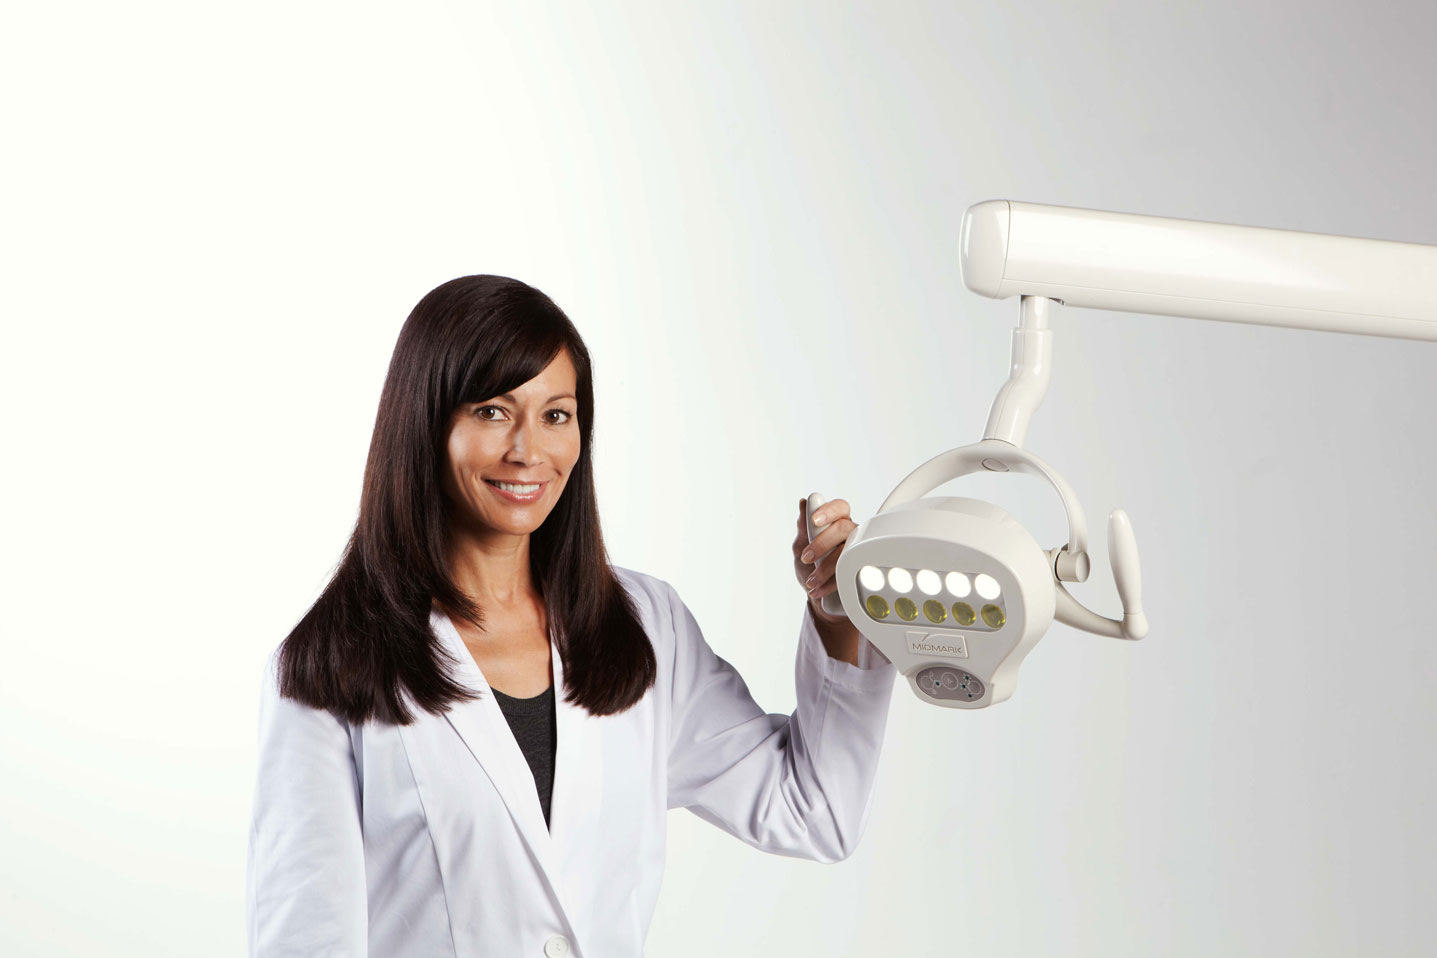 led-with-model